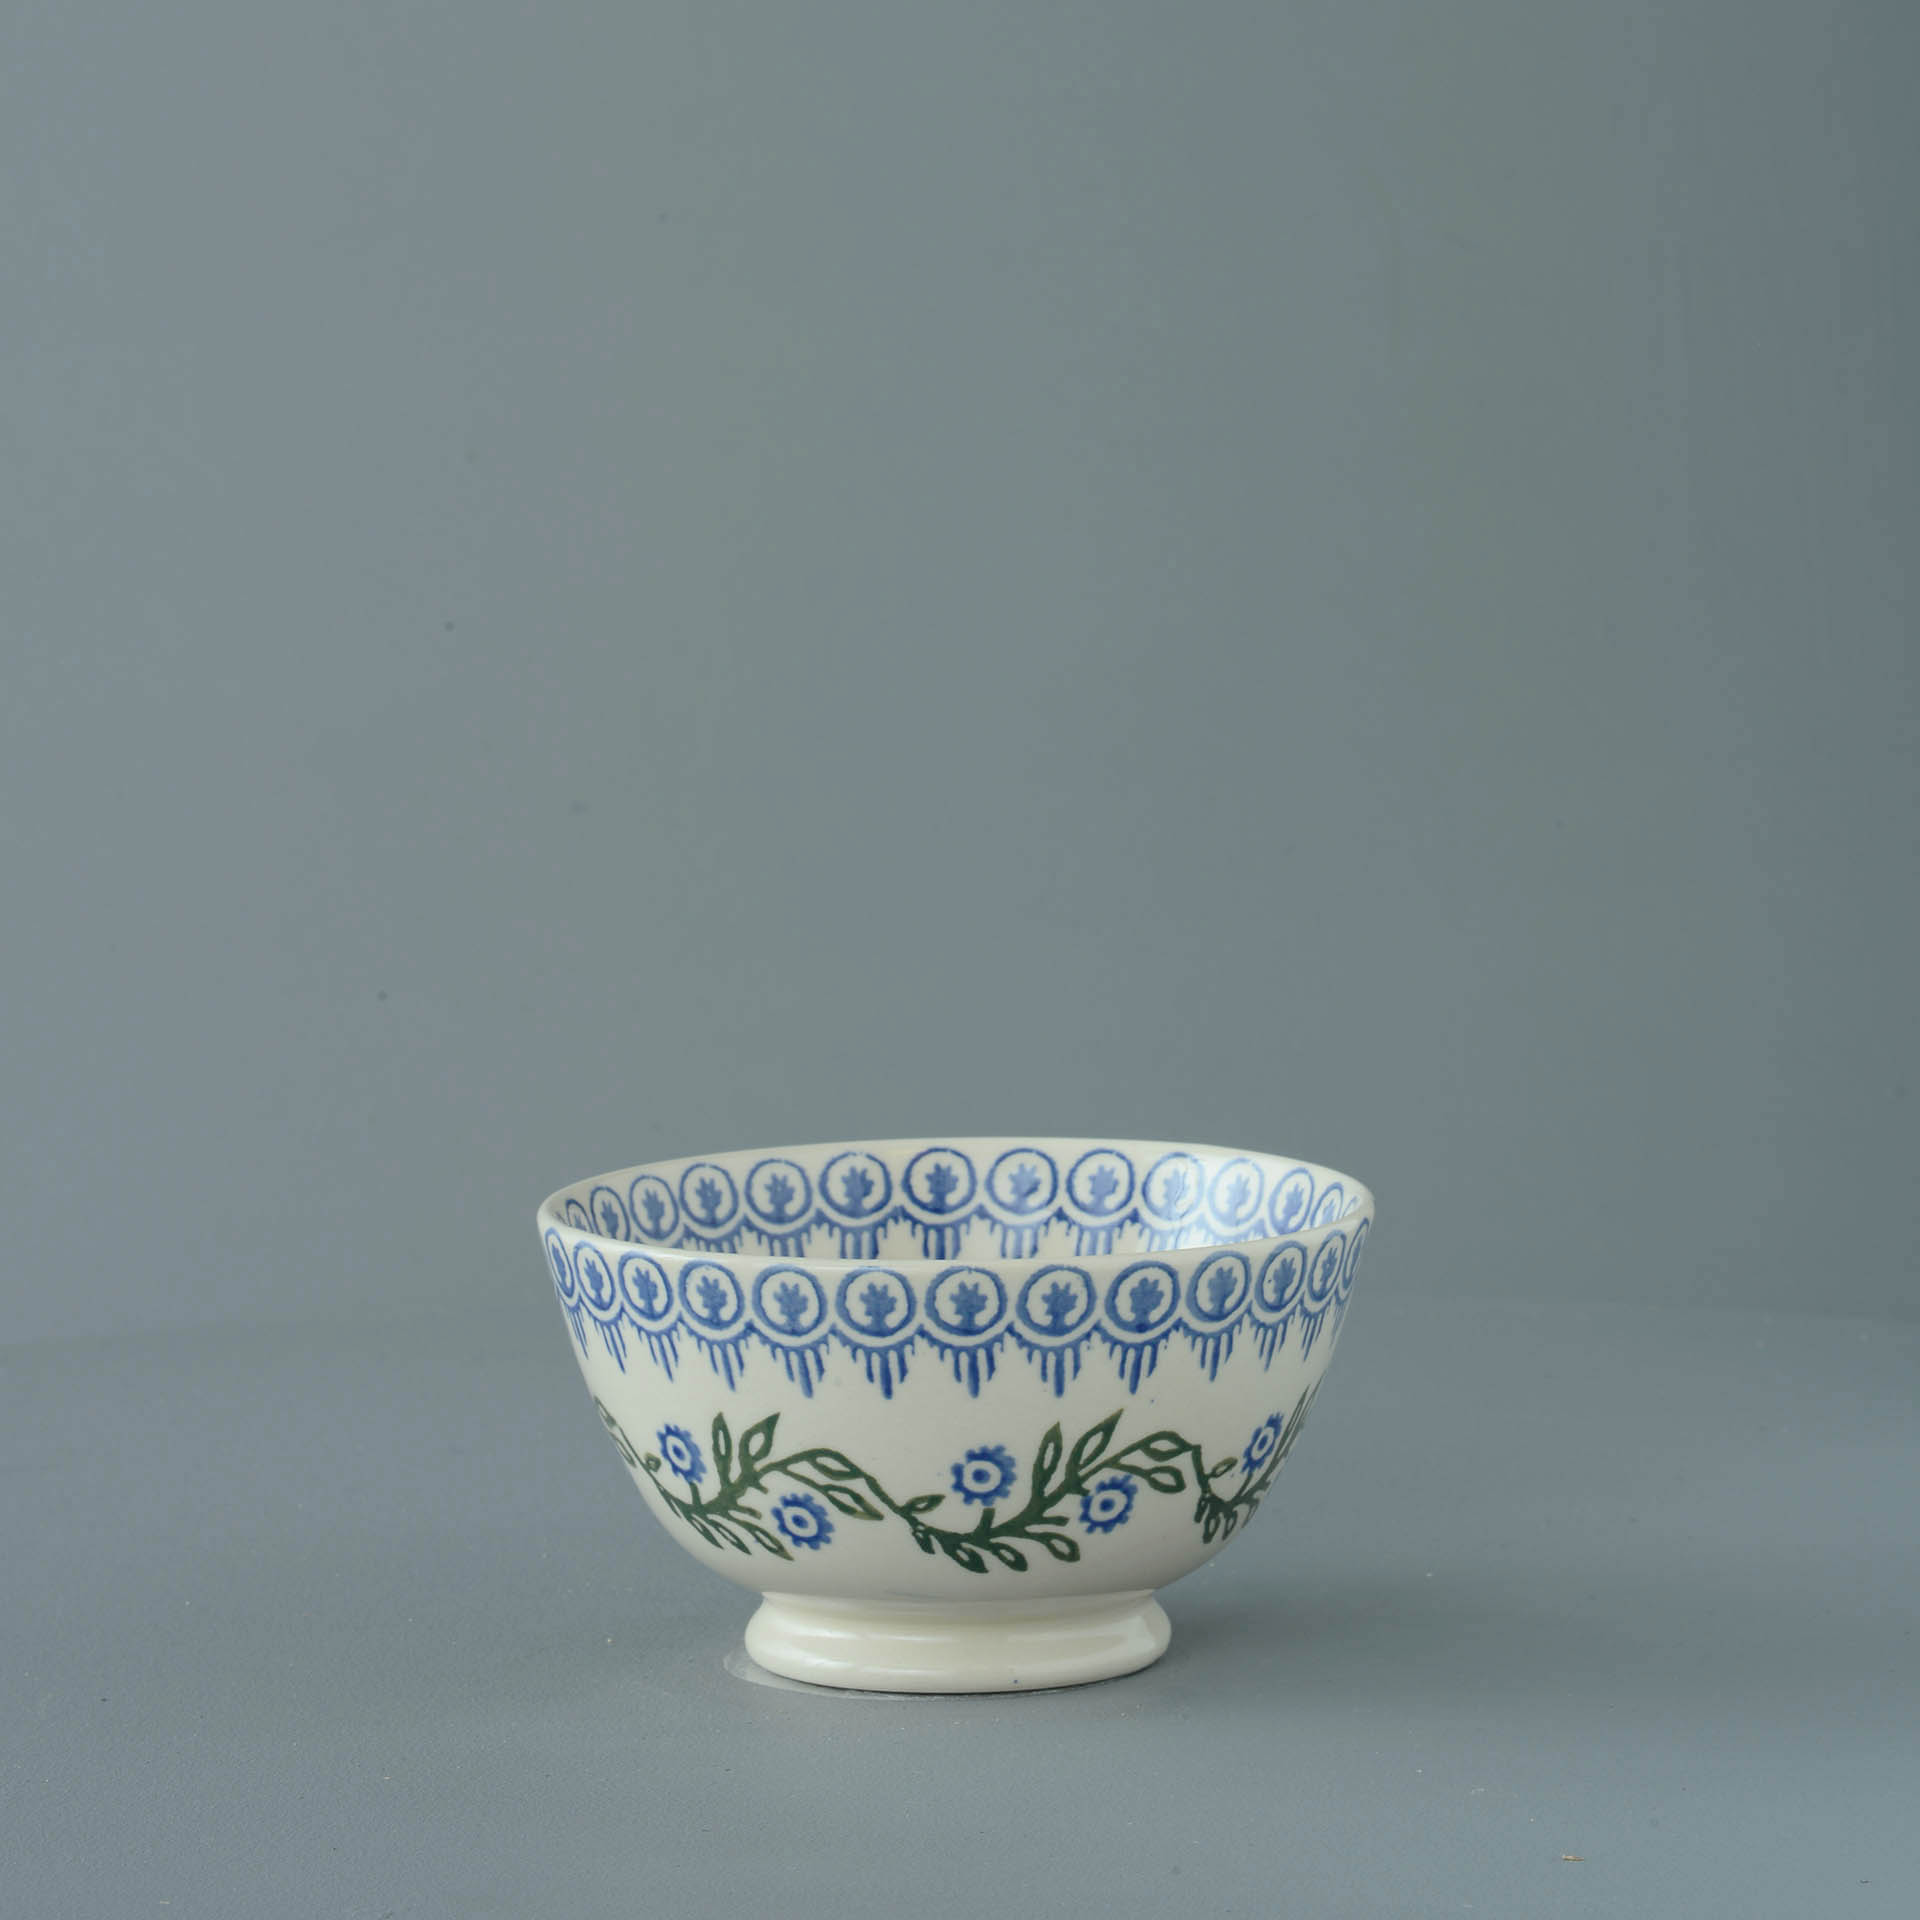 Floral Garland Small Bowl 6.5 x 12 cm